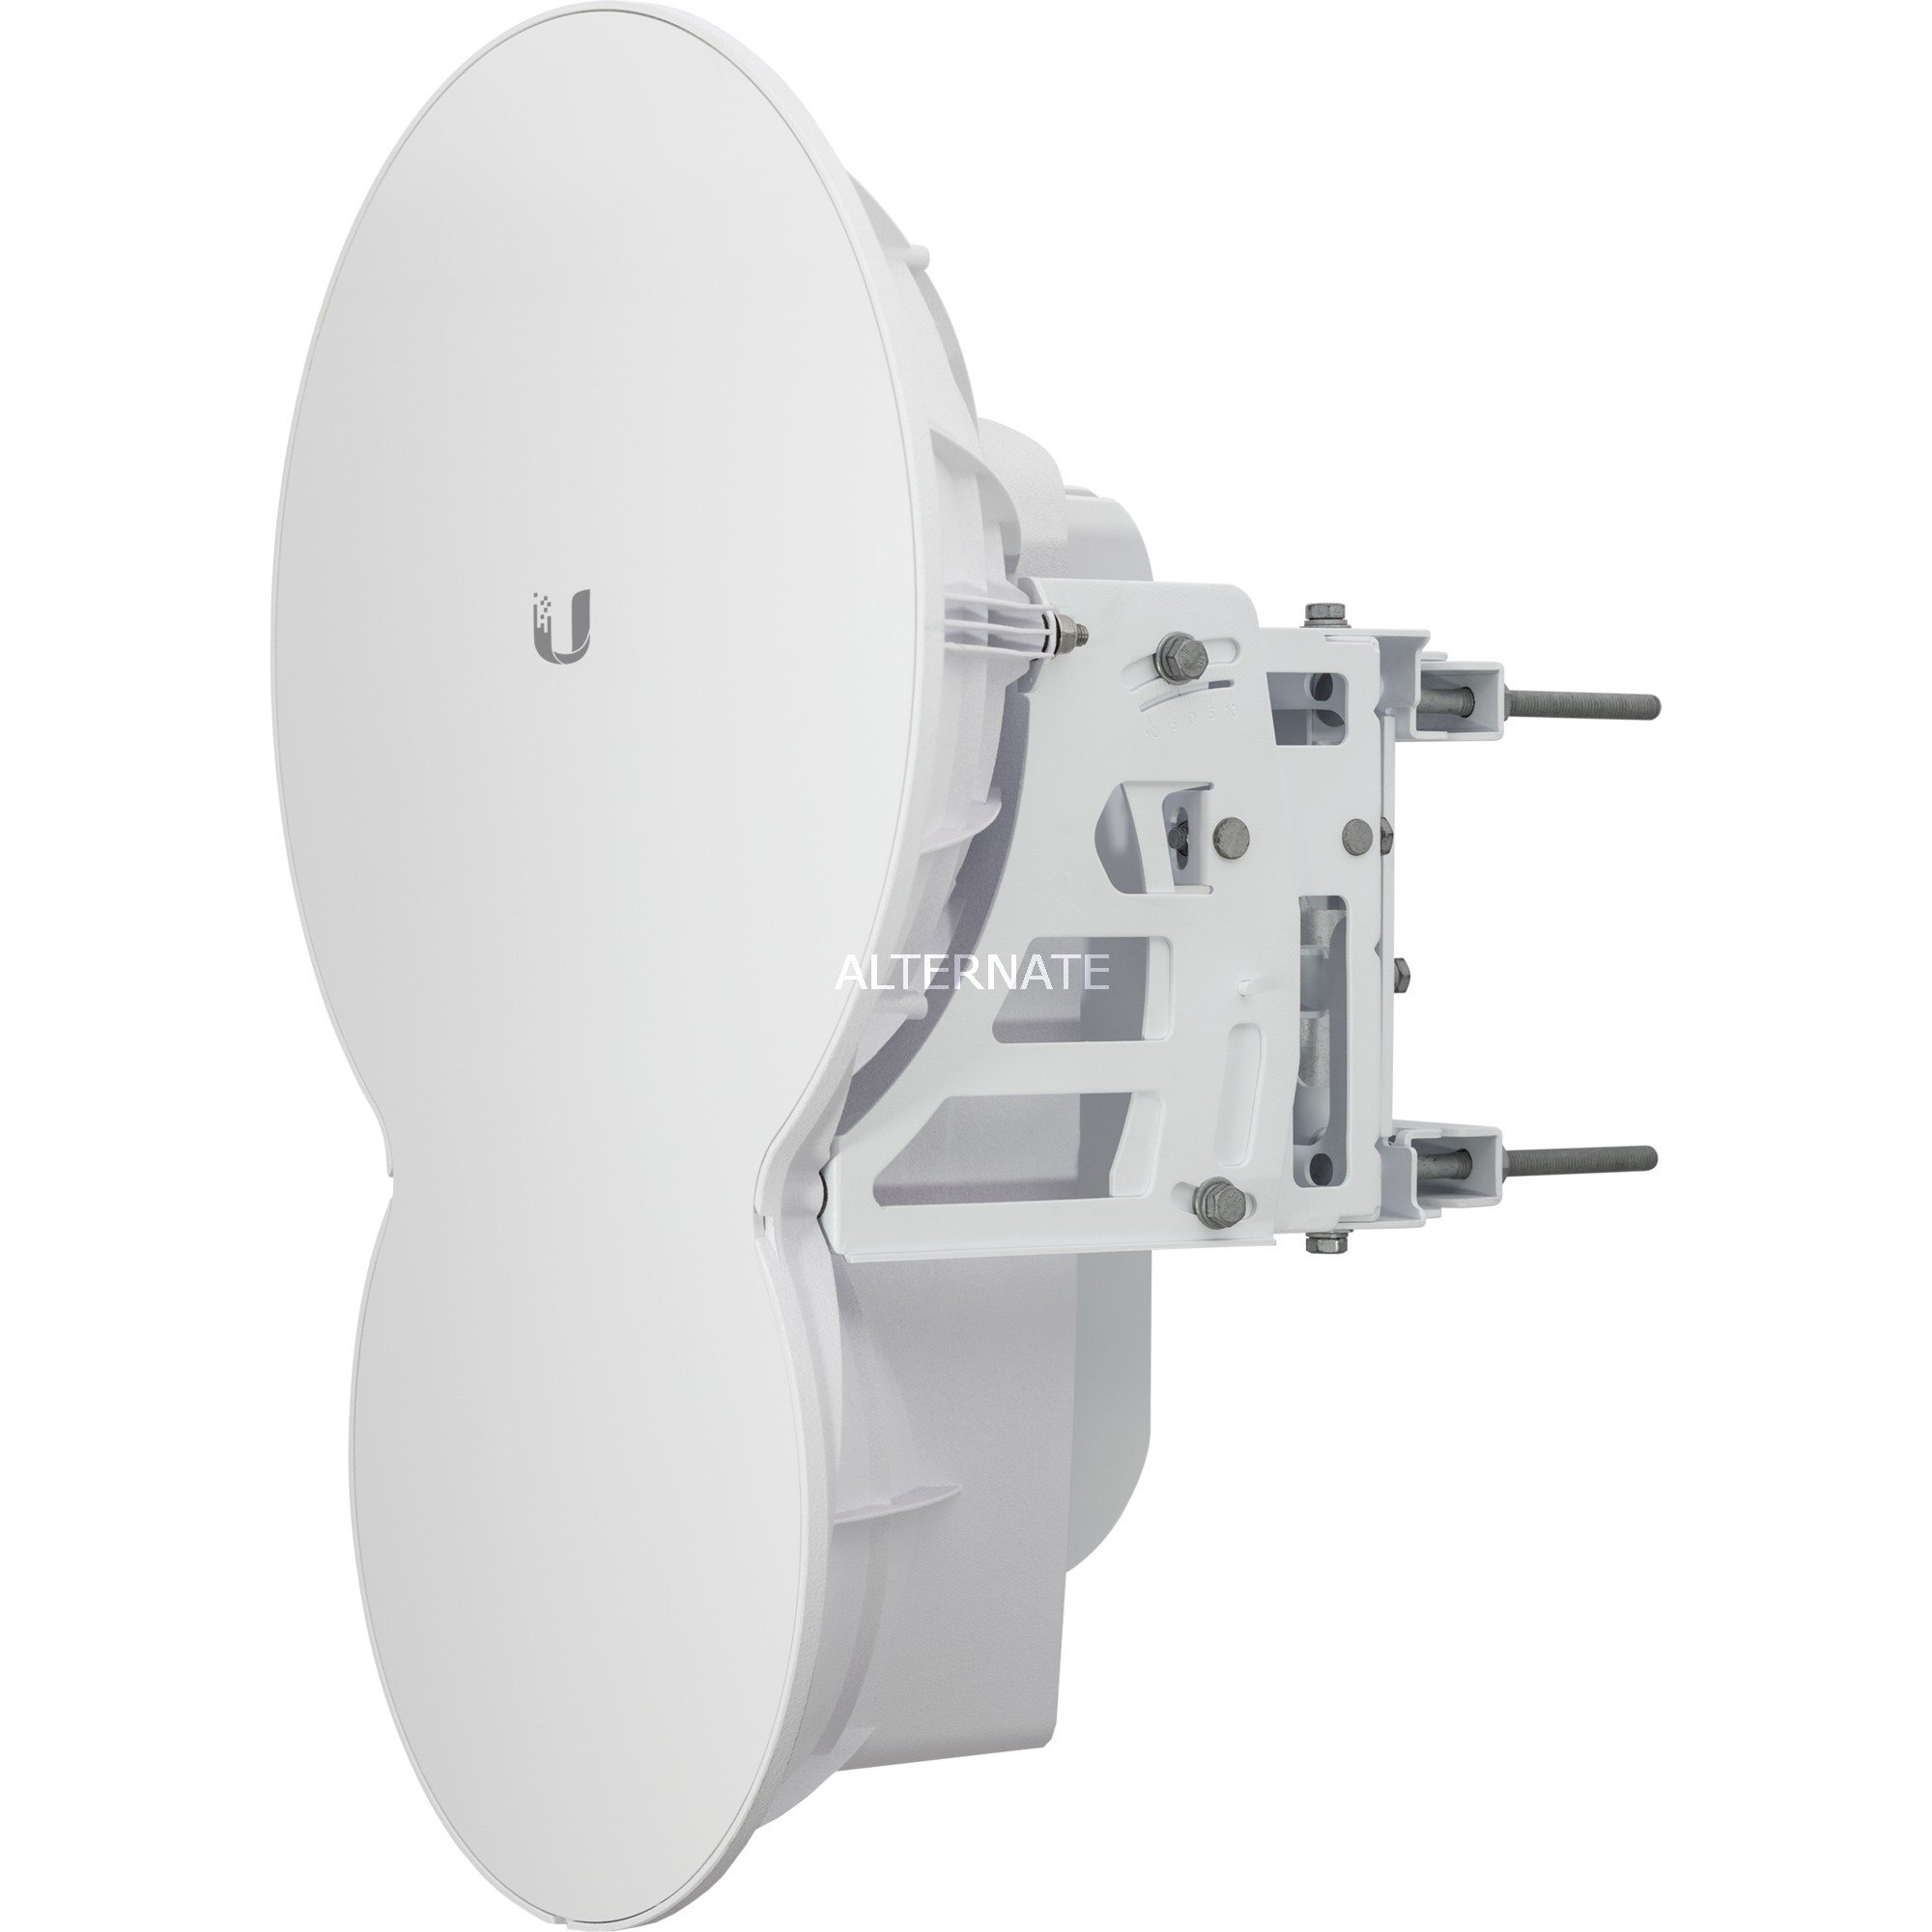 Image of airFiber 24, Bridge